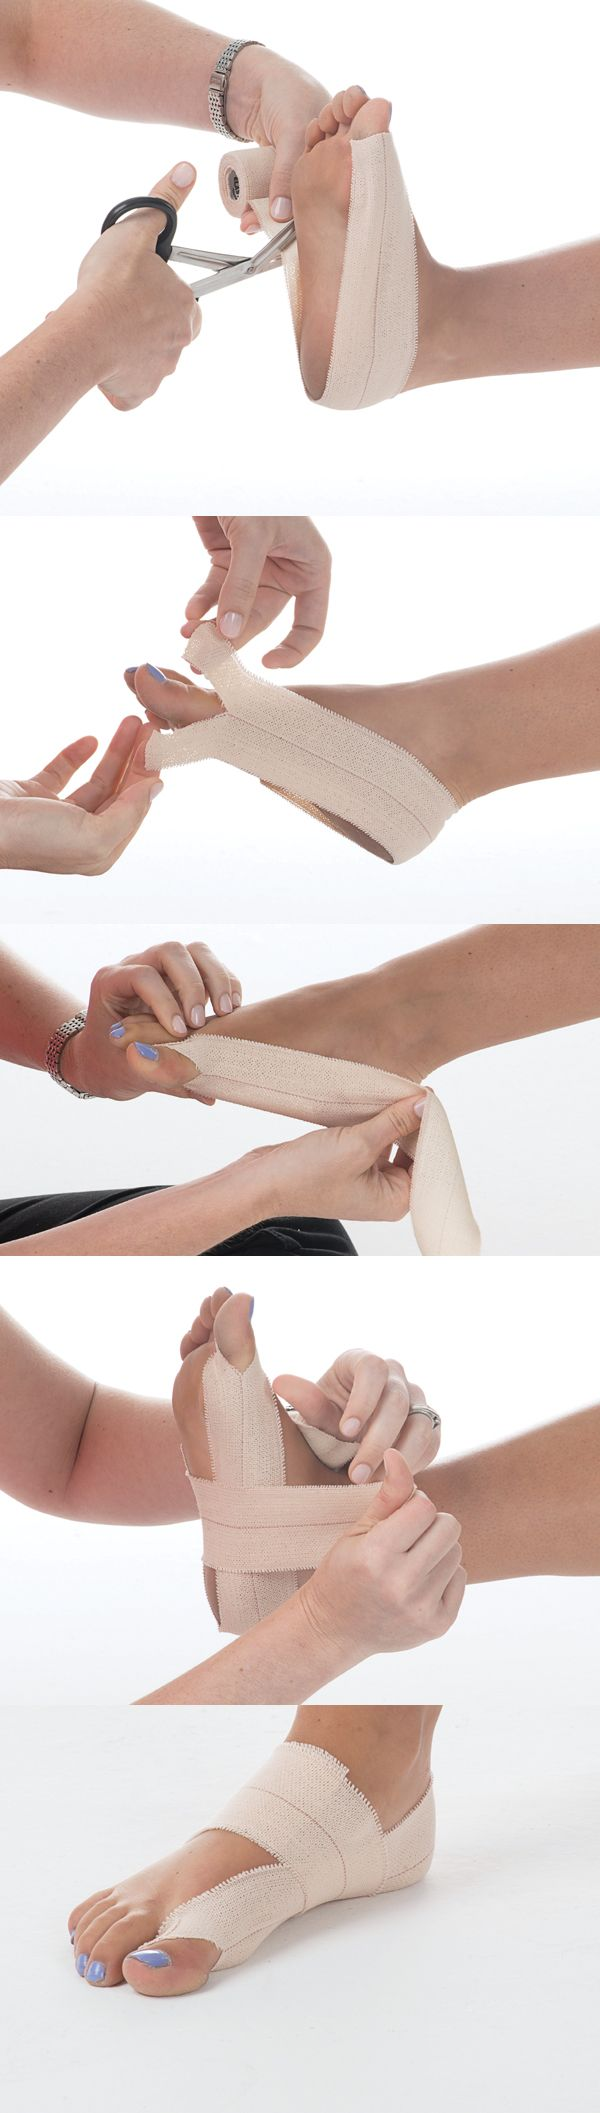 Taping Injuries | anatomy | Pinterest | Athletic training, Athletic ...